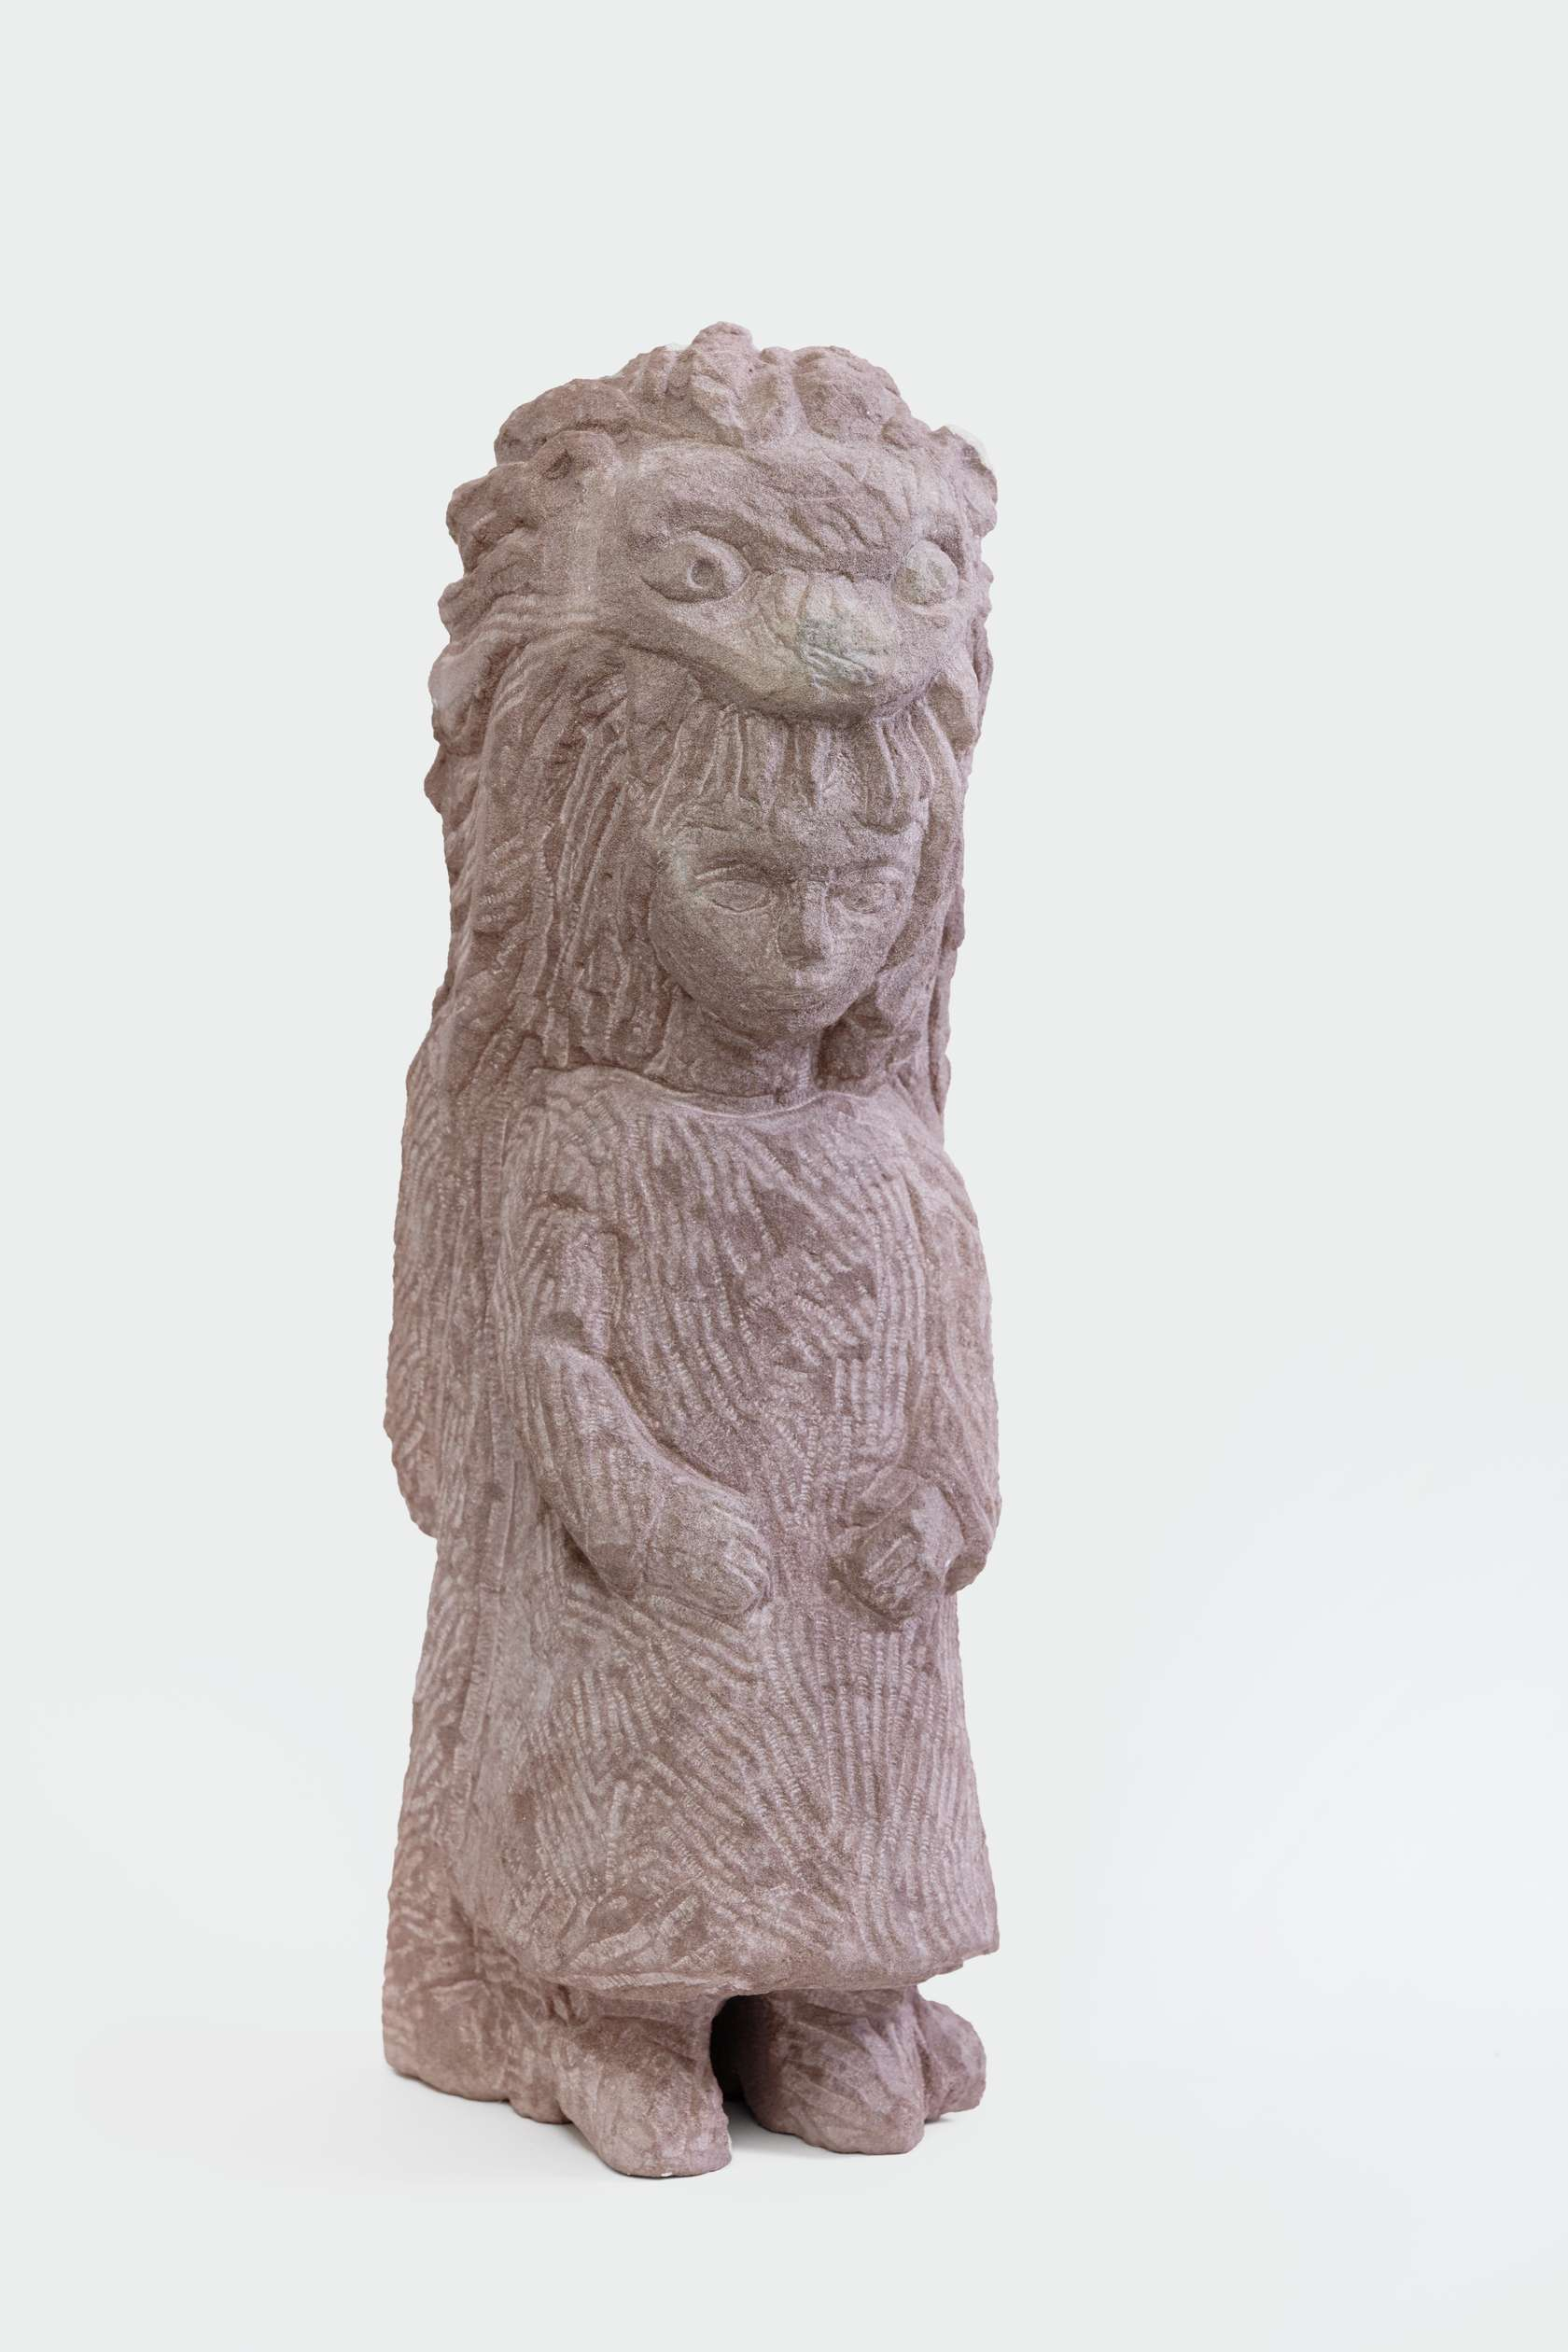 Stefan Rinck, Girl with Lioncoat, 2015 Grès42 x 18 x 15 cm / 16 1/2 x 7 1/8 x 5 7/8 inches